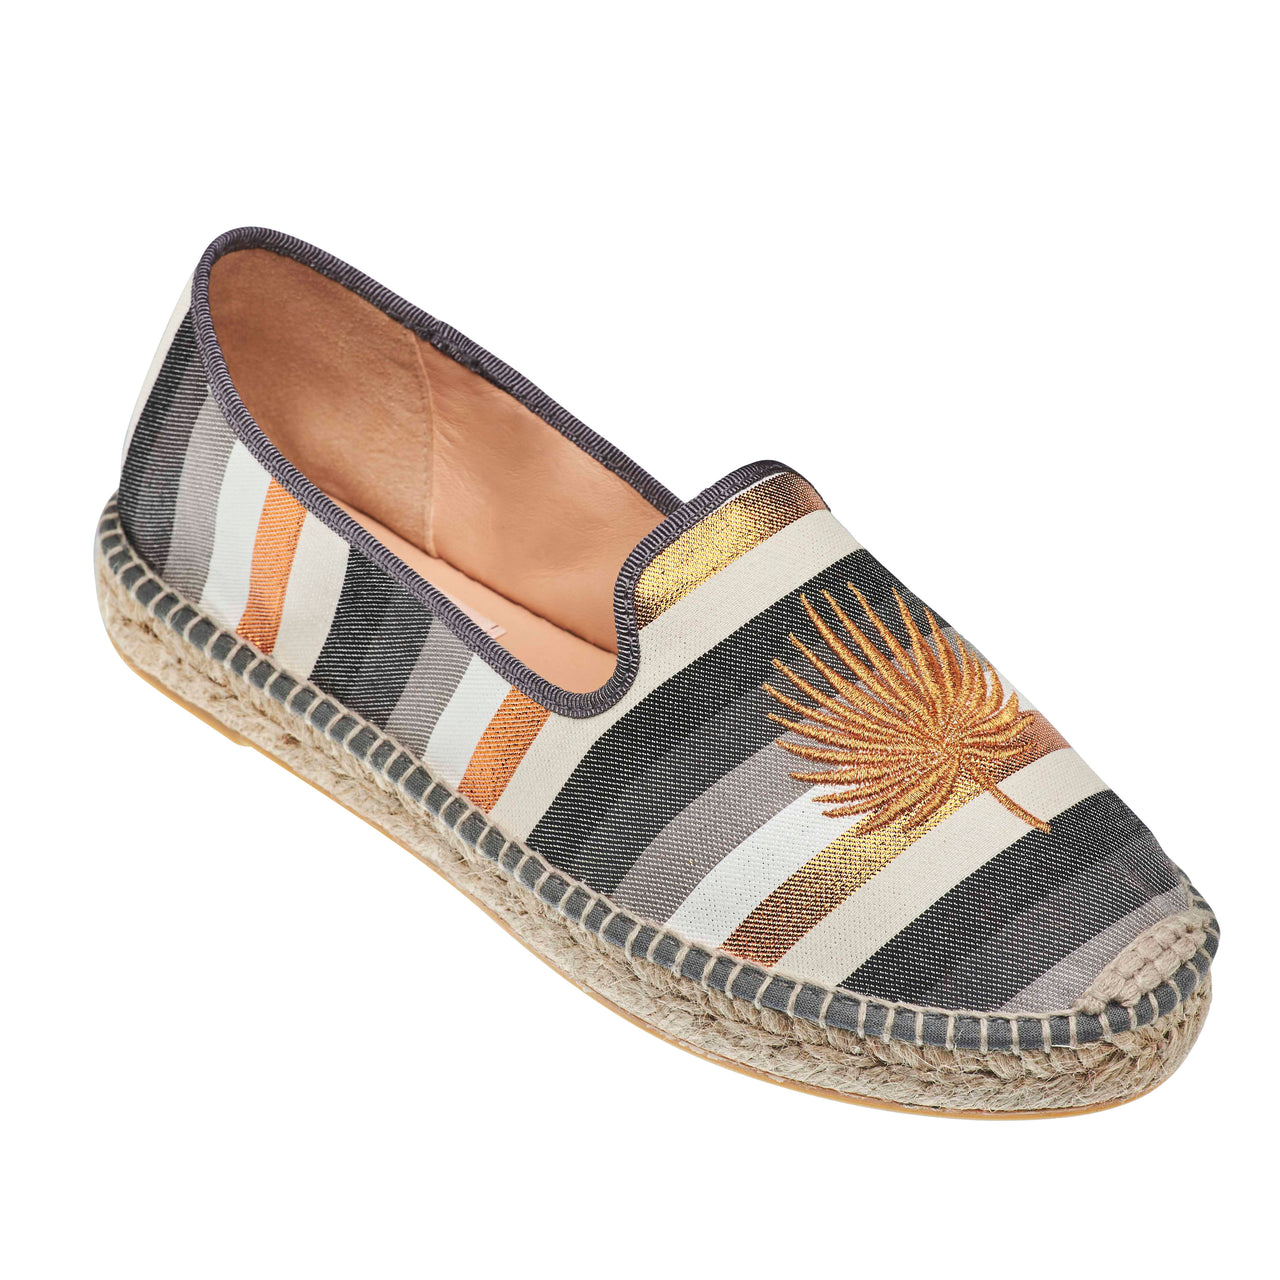 TONSON Rose Gold espadrilles - Badt and Co - singapore